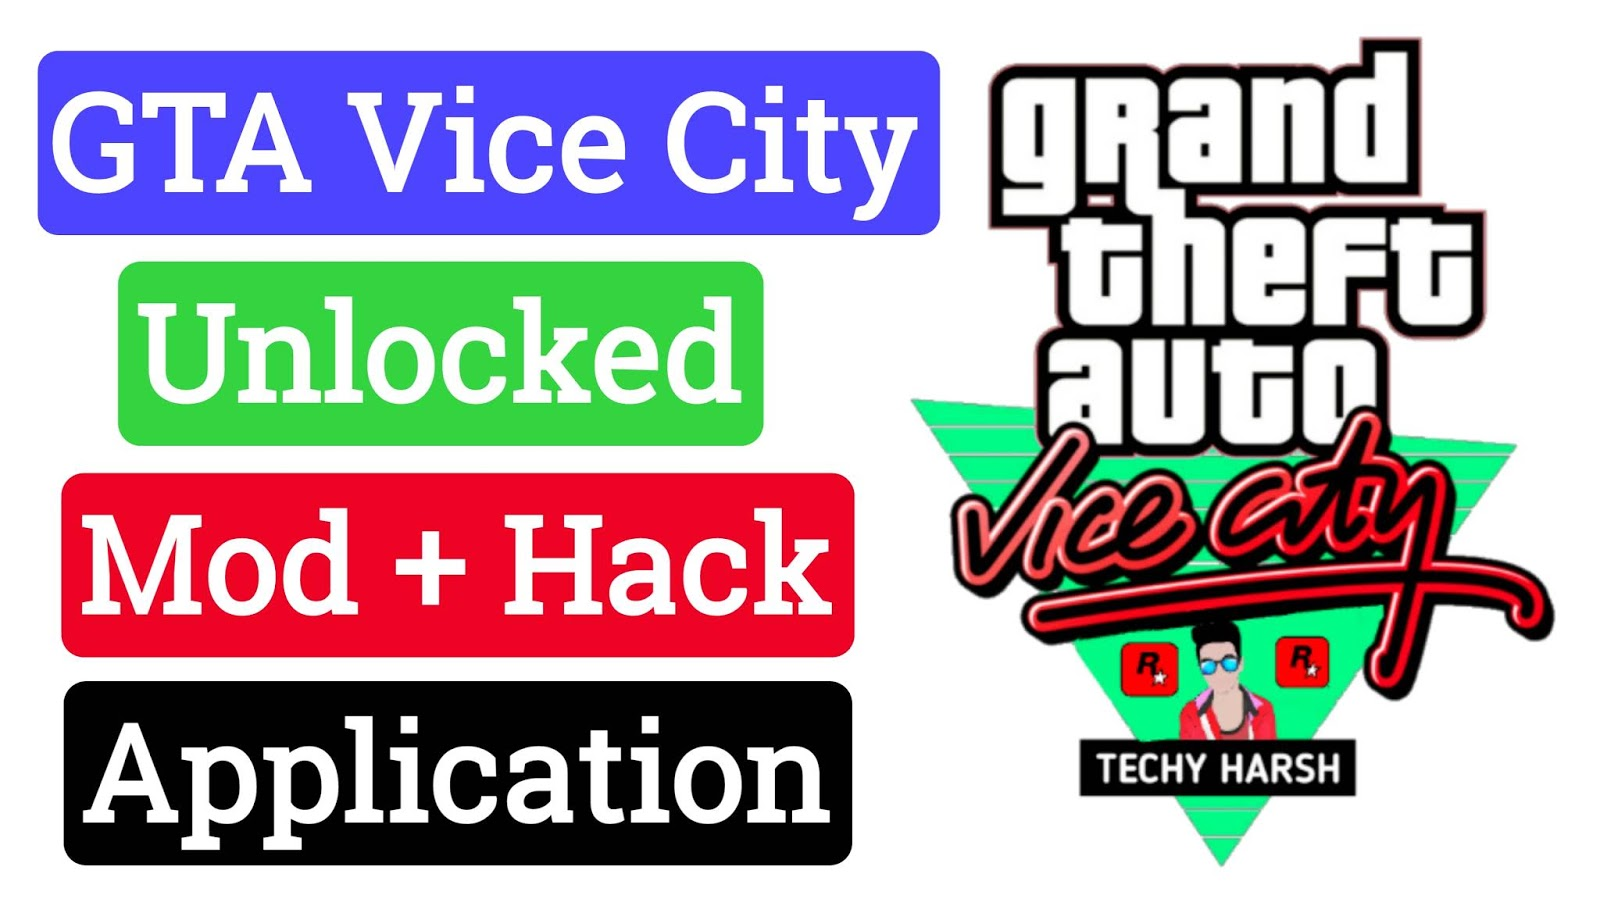 GTA VICE CITY Mod + Unlocked APK Download - Techy Harsh